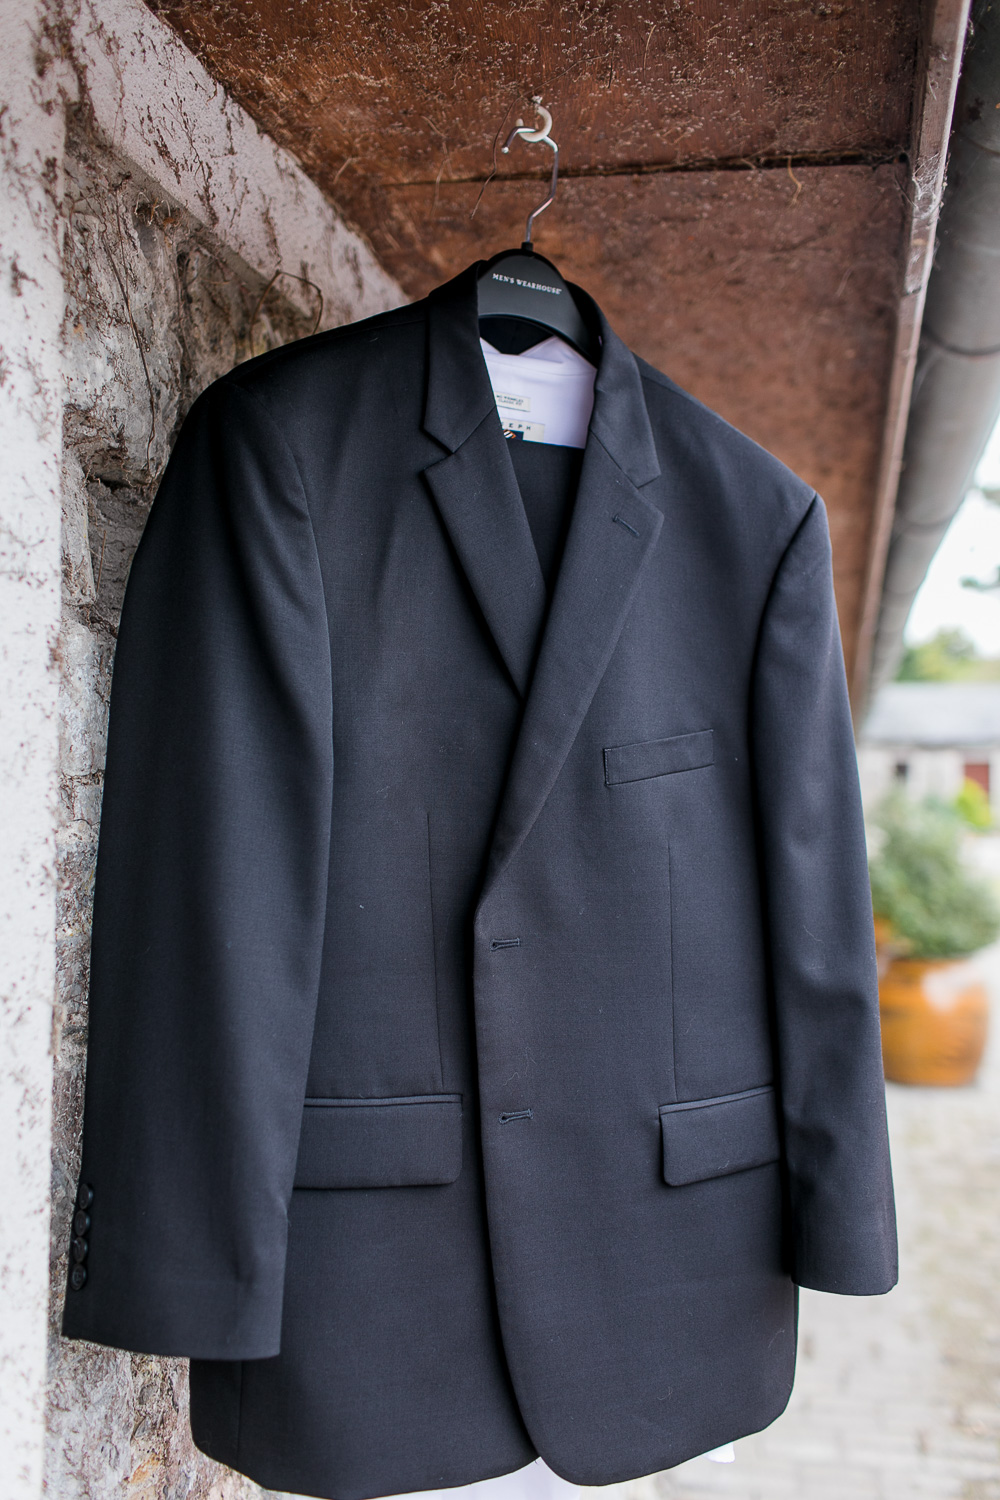 Groom's suit hanging outside on wooden beams